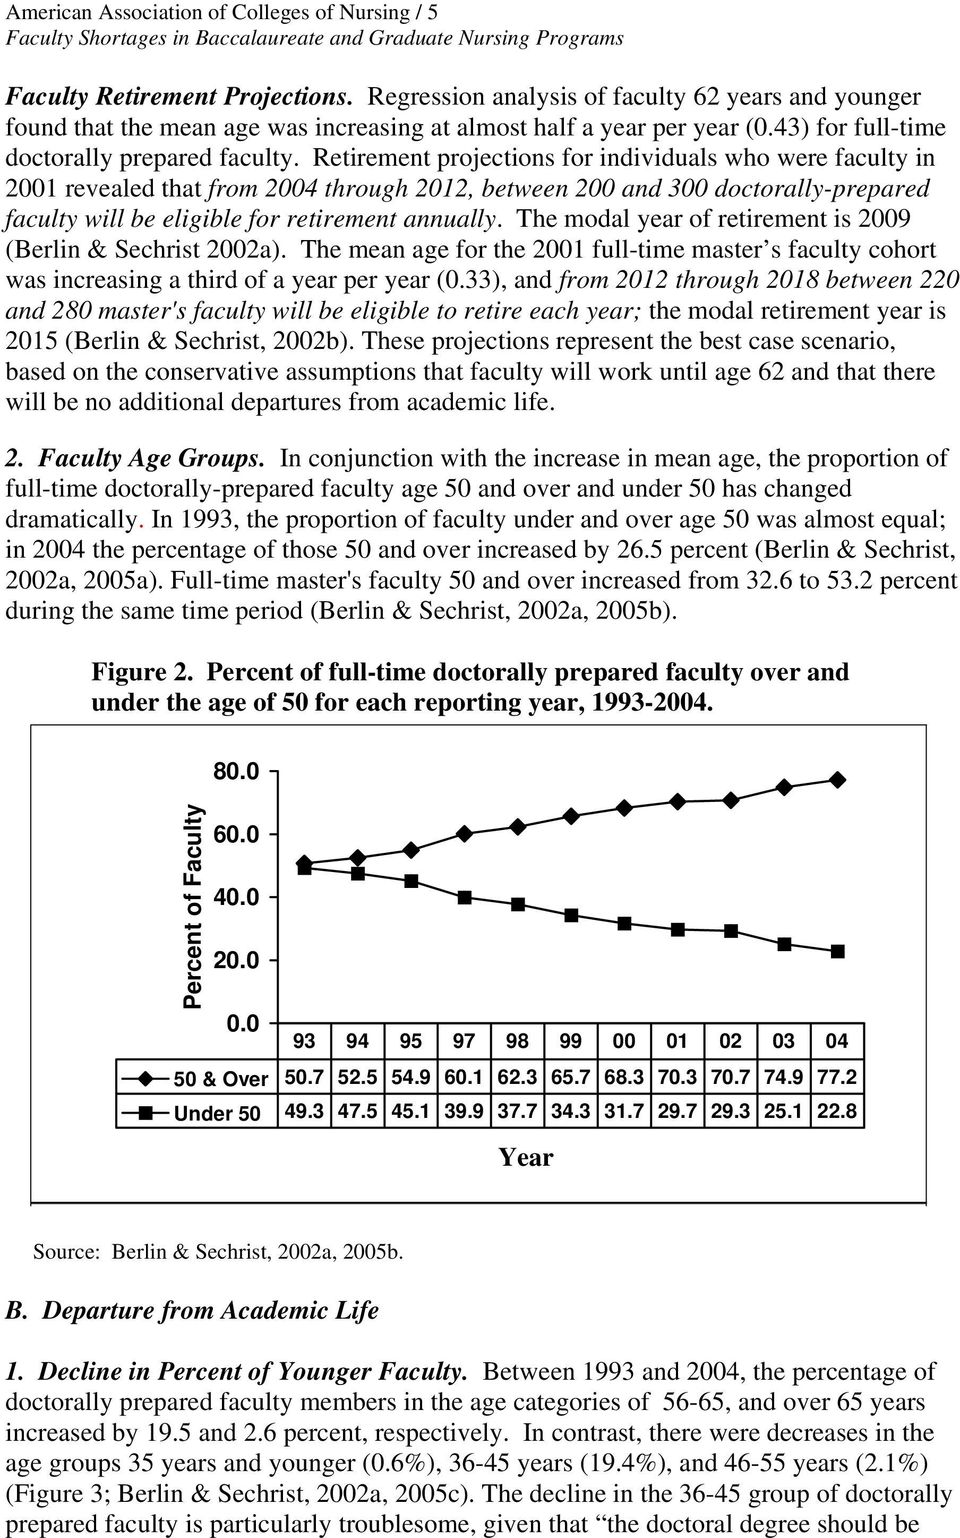 Retirement projections for individuals who were faculty in 2001 revealed that from 2004 through 2012, between 200 and 300 doctorally-prepared faculty will be eligible for retirement annually.